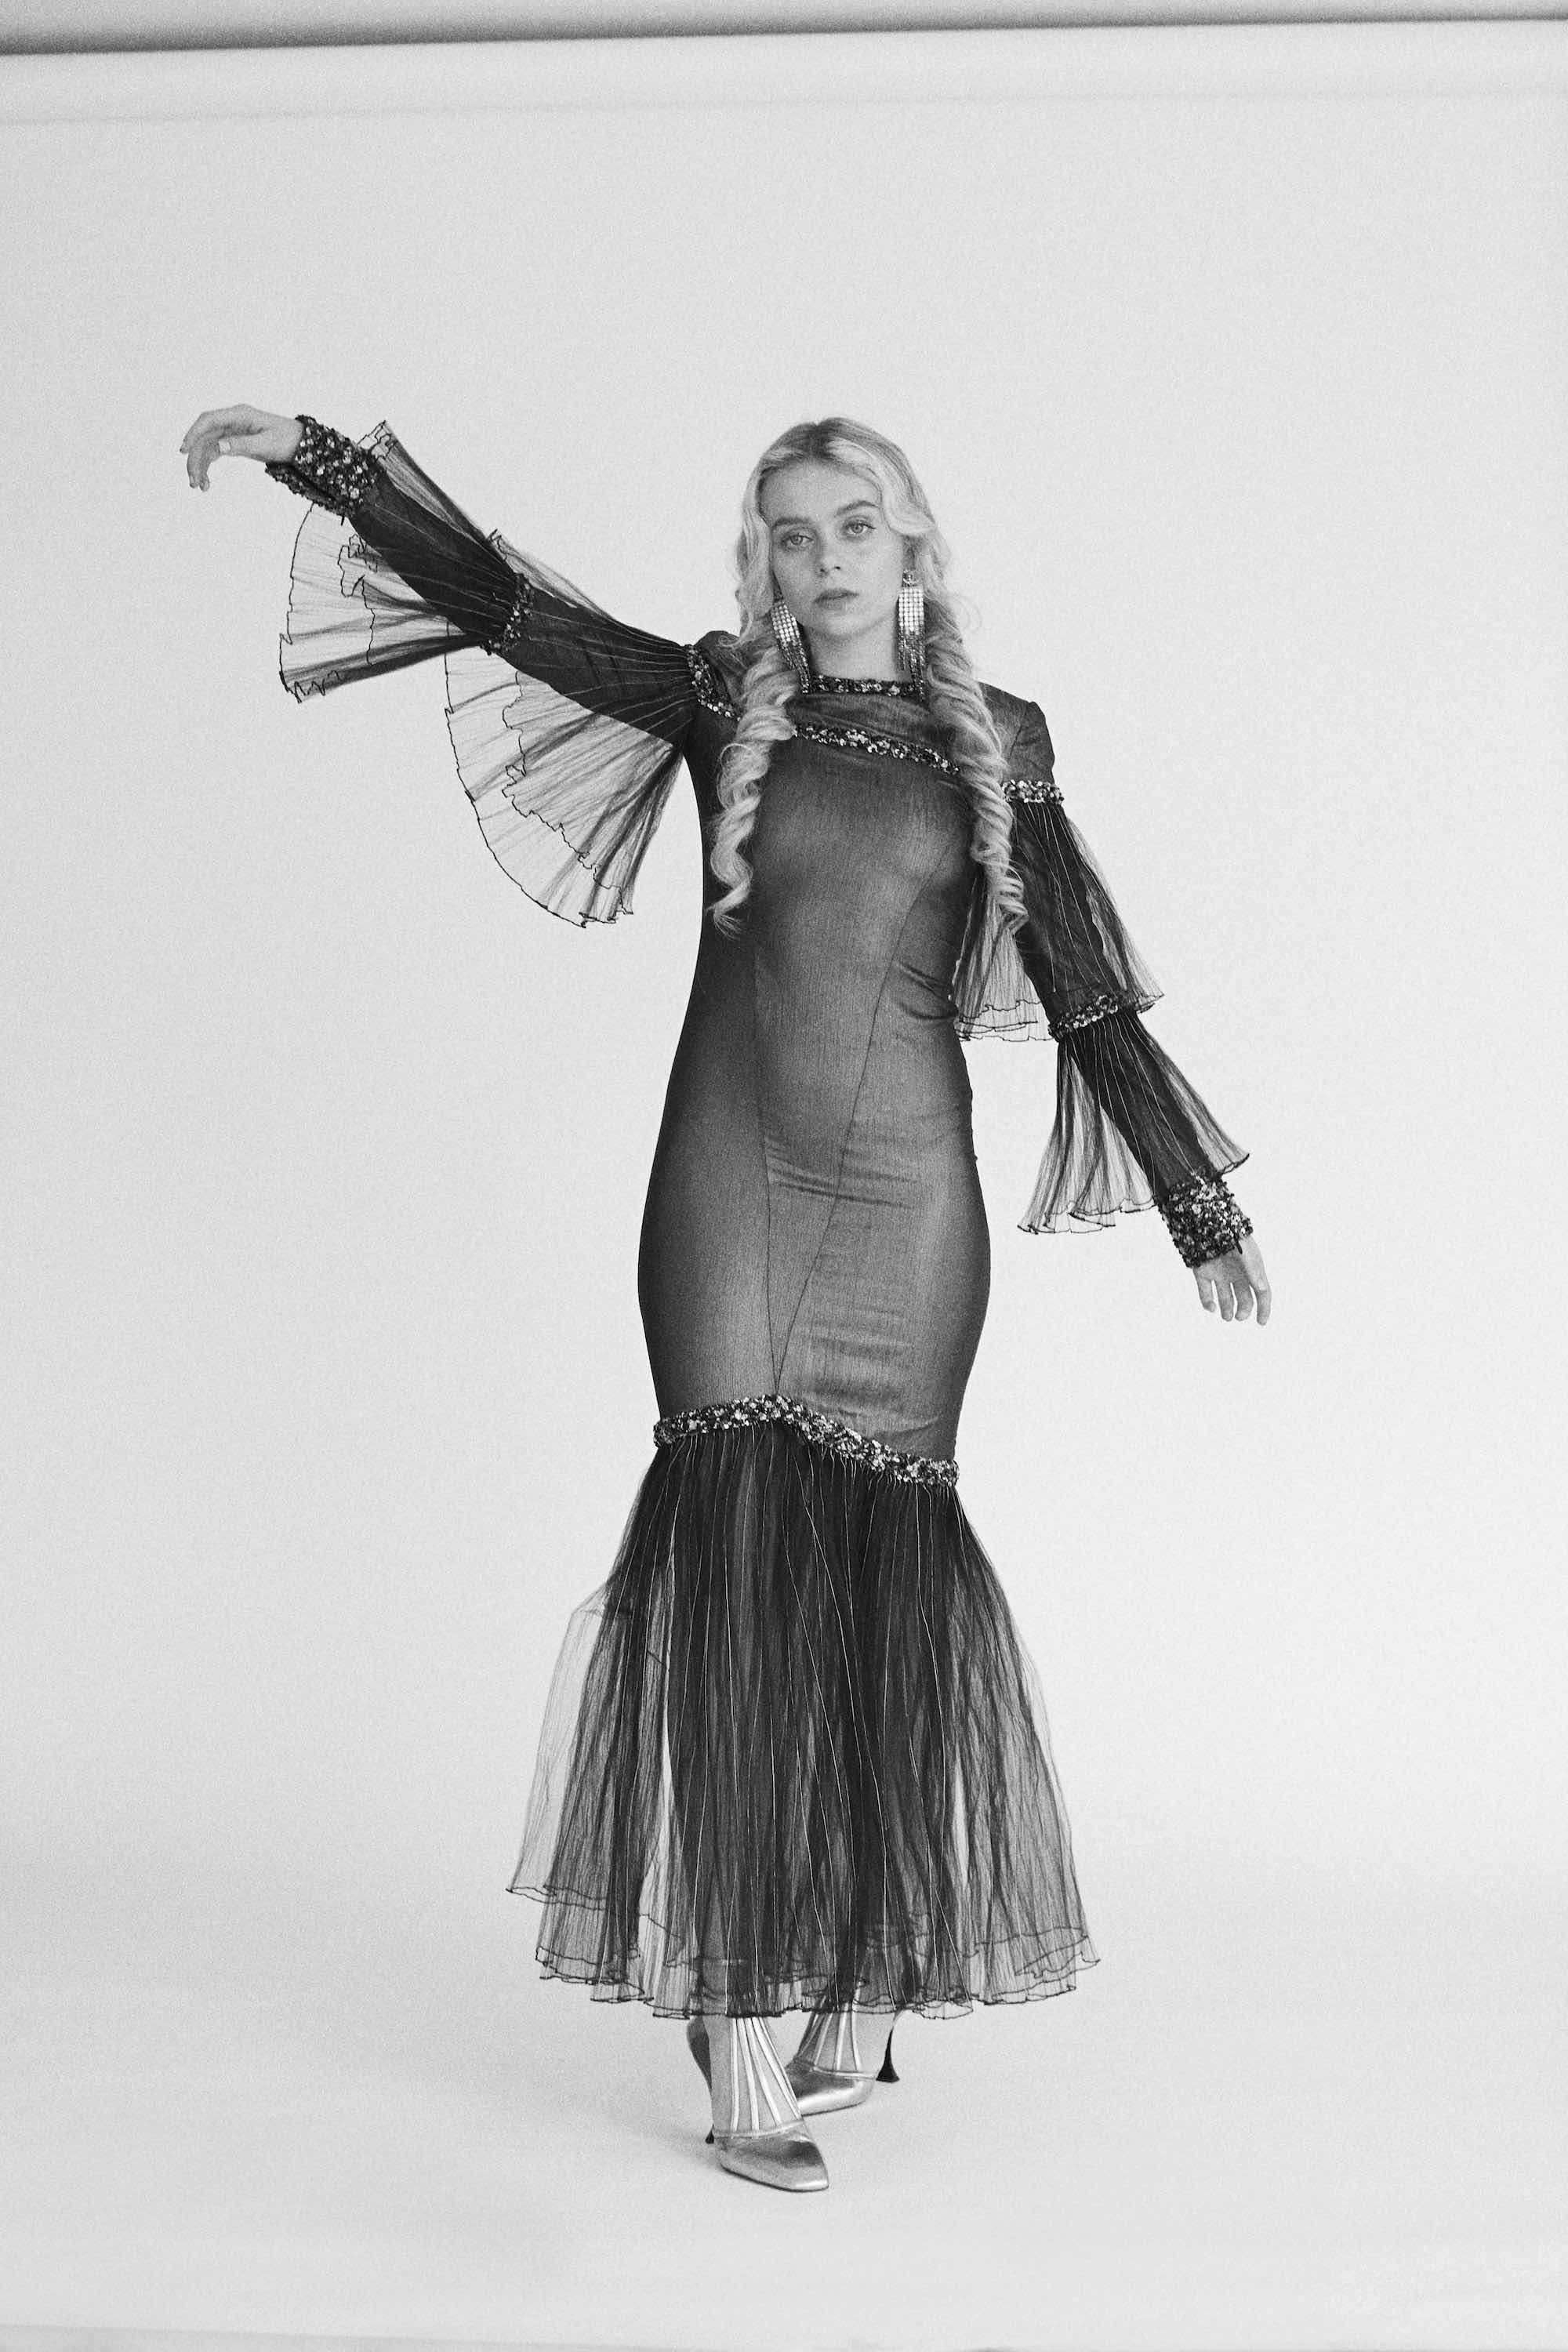 Betty Belle wearing Chanel Pre-Fall 2019 in Summer 2019 issue in fishtail dress